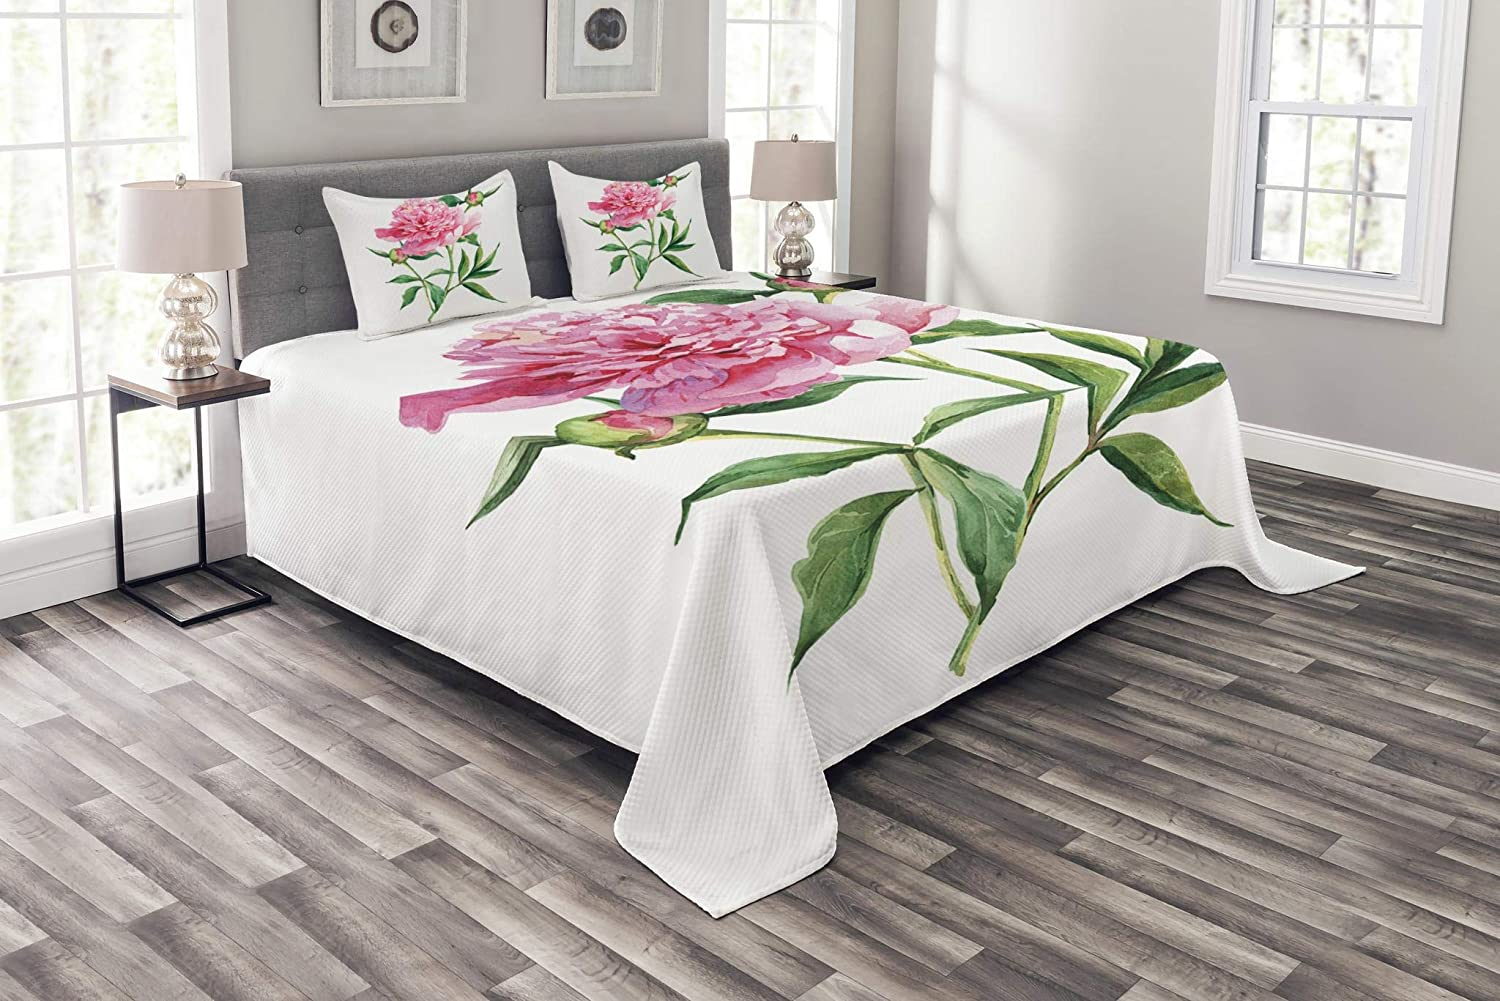 Ambesonne Watercolor Flower Bedspread, Vintage Peony Painting Botanical Spring Garden Flower Nature Theme, Decorative Quilted 3 Piece Coverlet Set with 2 Pillow Shams, Queen Size, Pink White